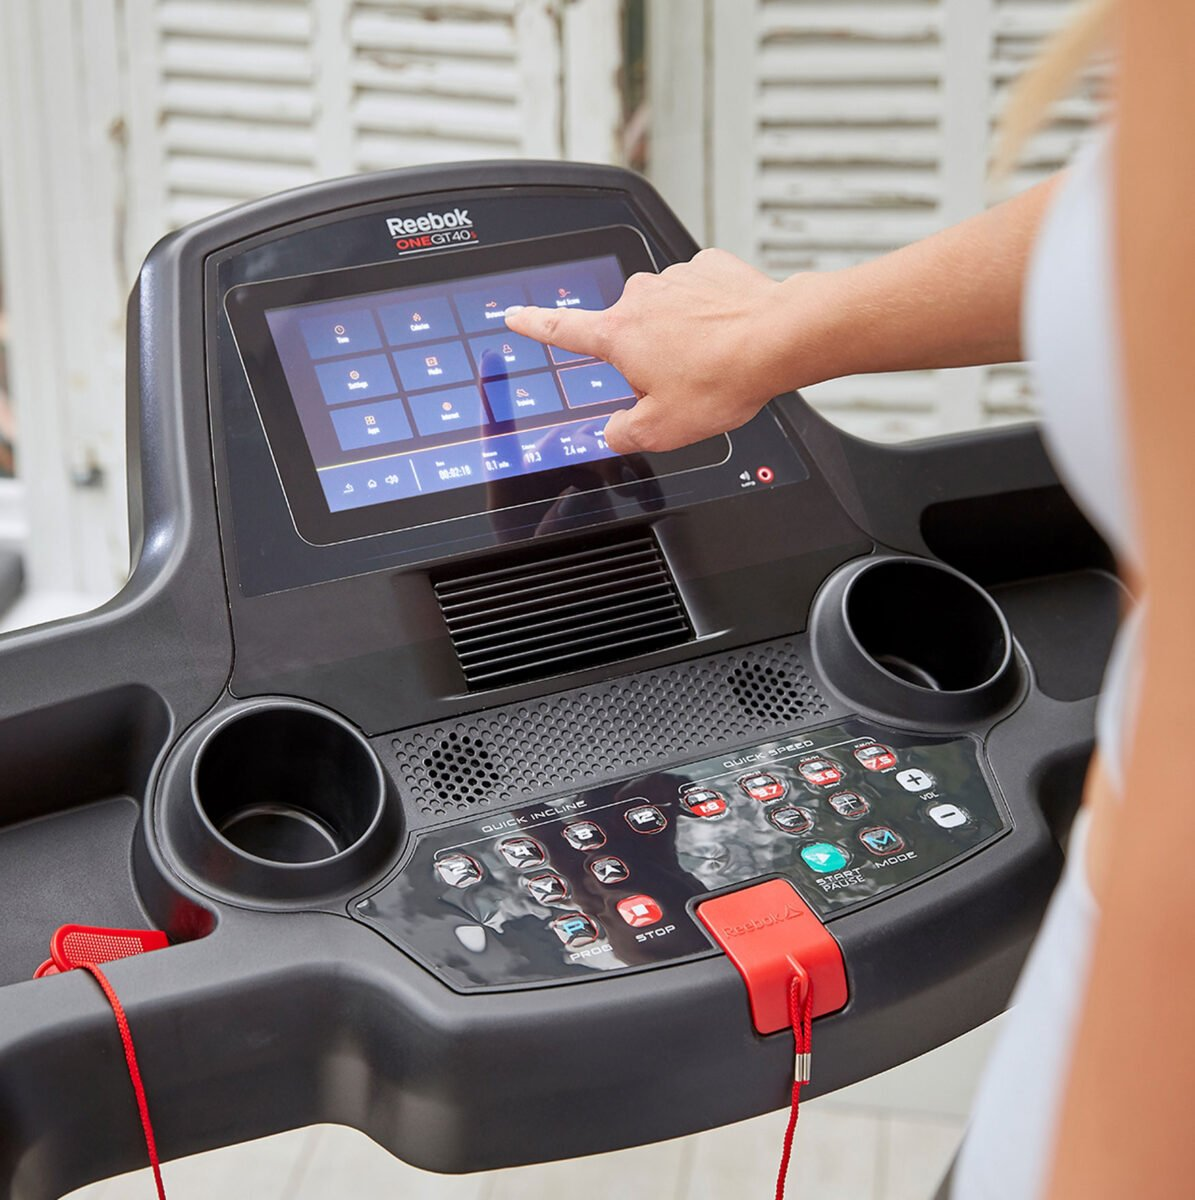 Using Reebok GT40s Touch Screen Treadmill touch screen features